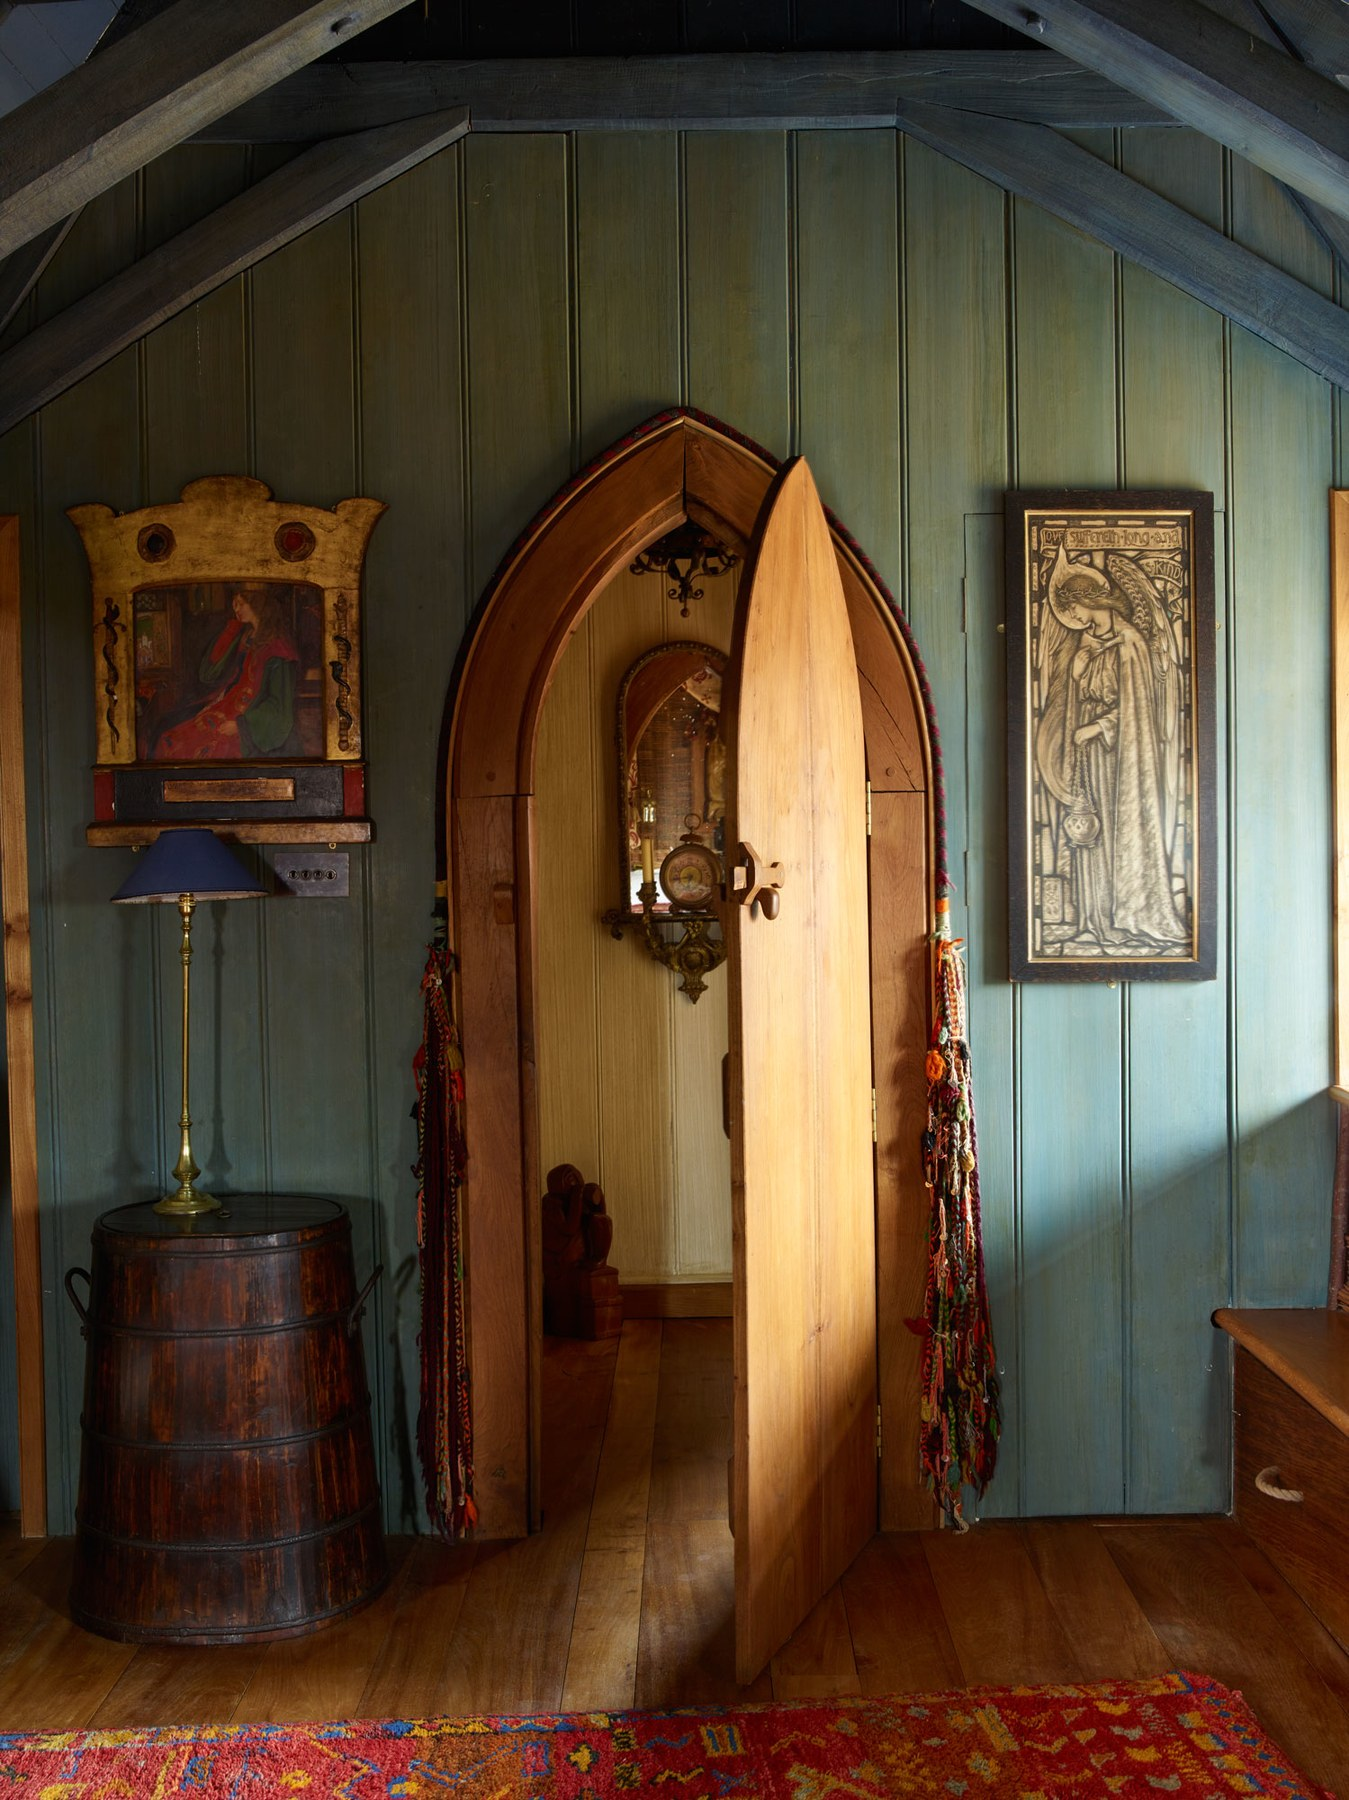 The doorway of the master suite decorated with art and treasures from Irons's travels. Photo